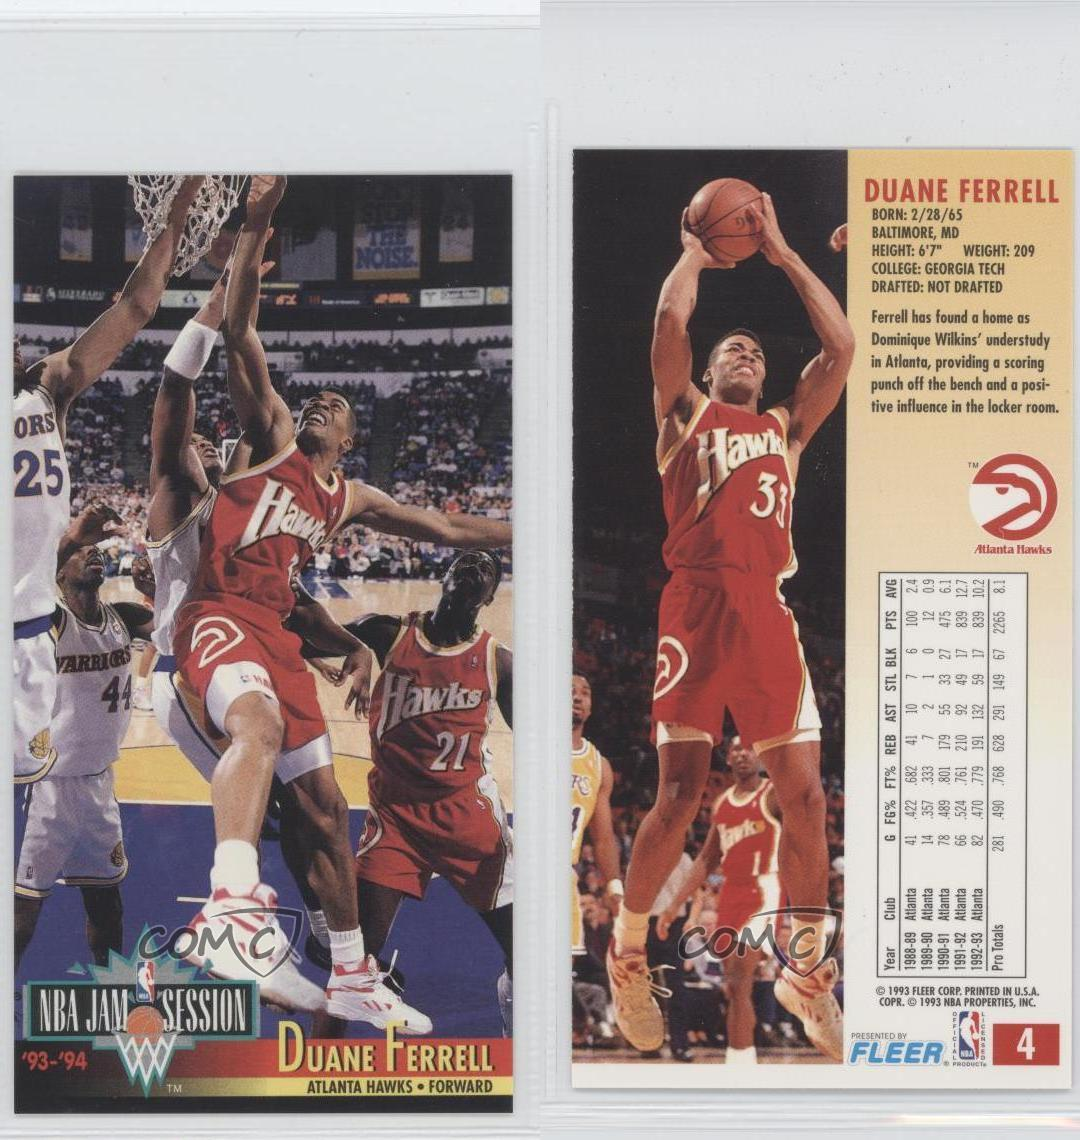 1993-94 NBA Jam Session #4 Duane Ferrell Atlanta Hawks